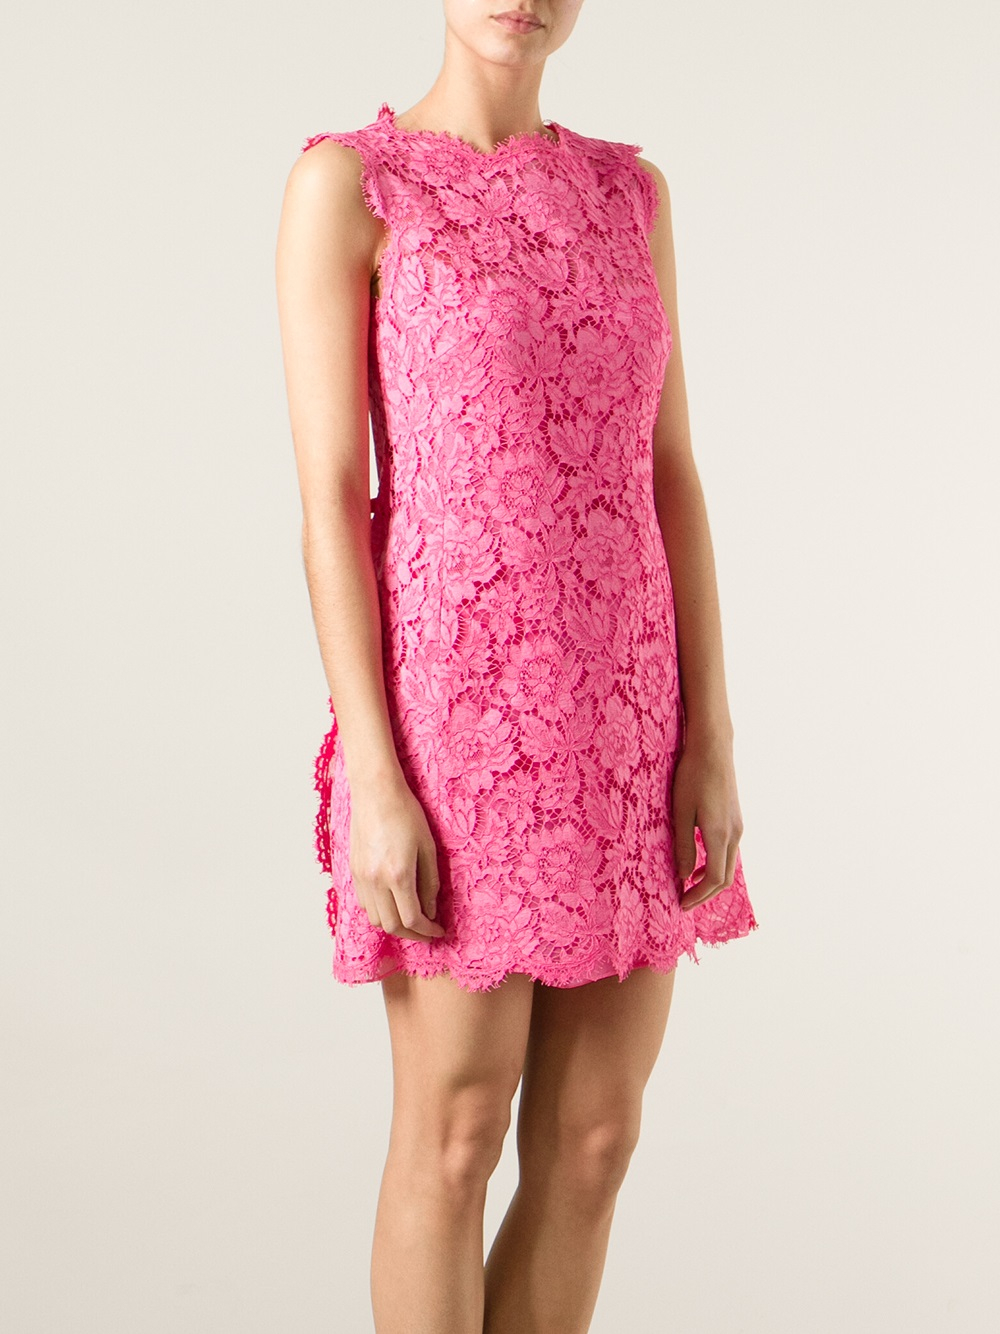 Valentino Floral Lace Fitted Dress in Pink - Lyst